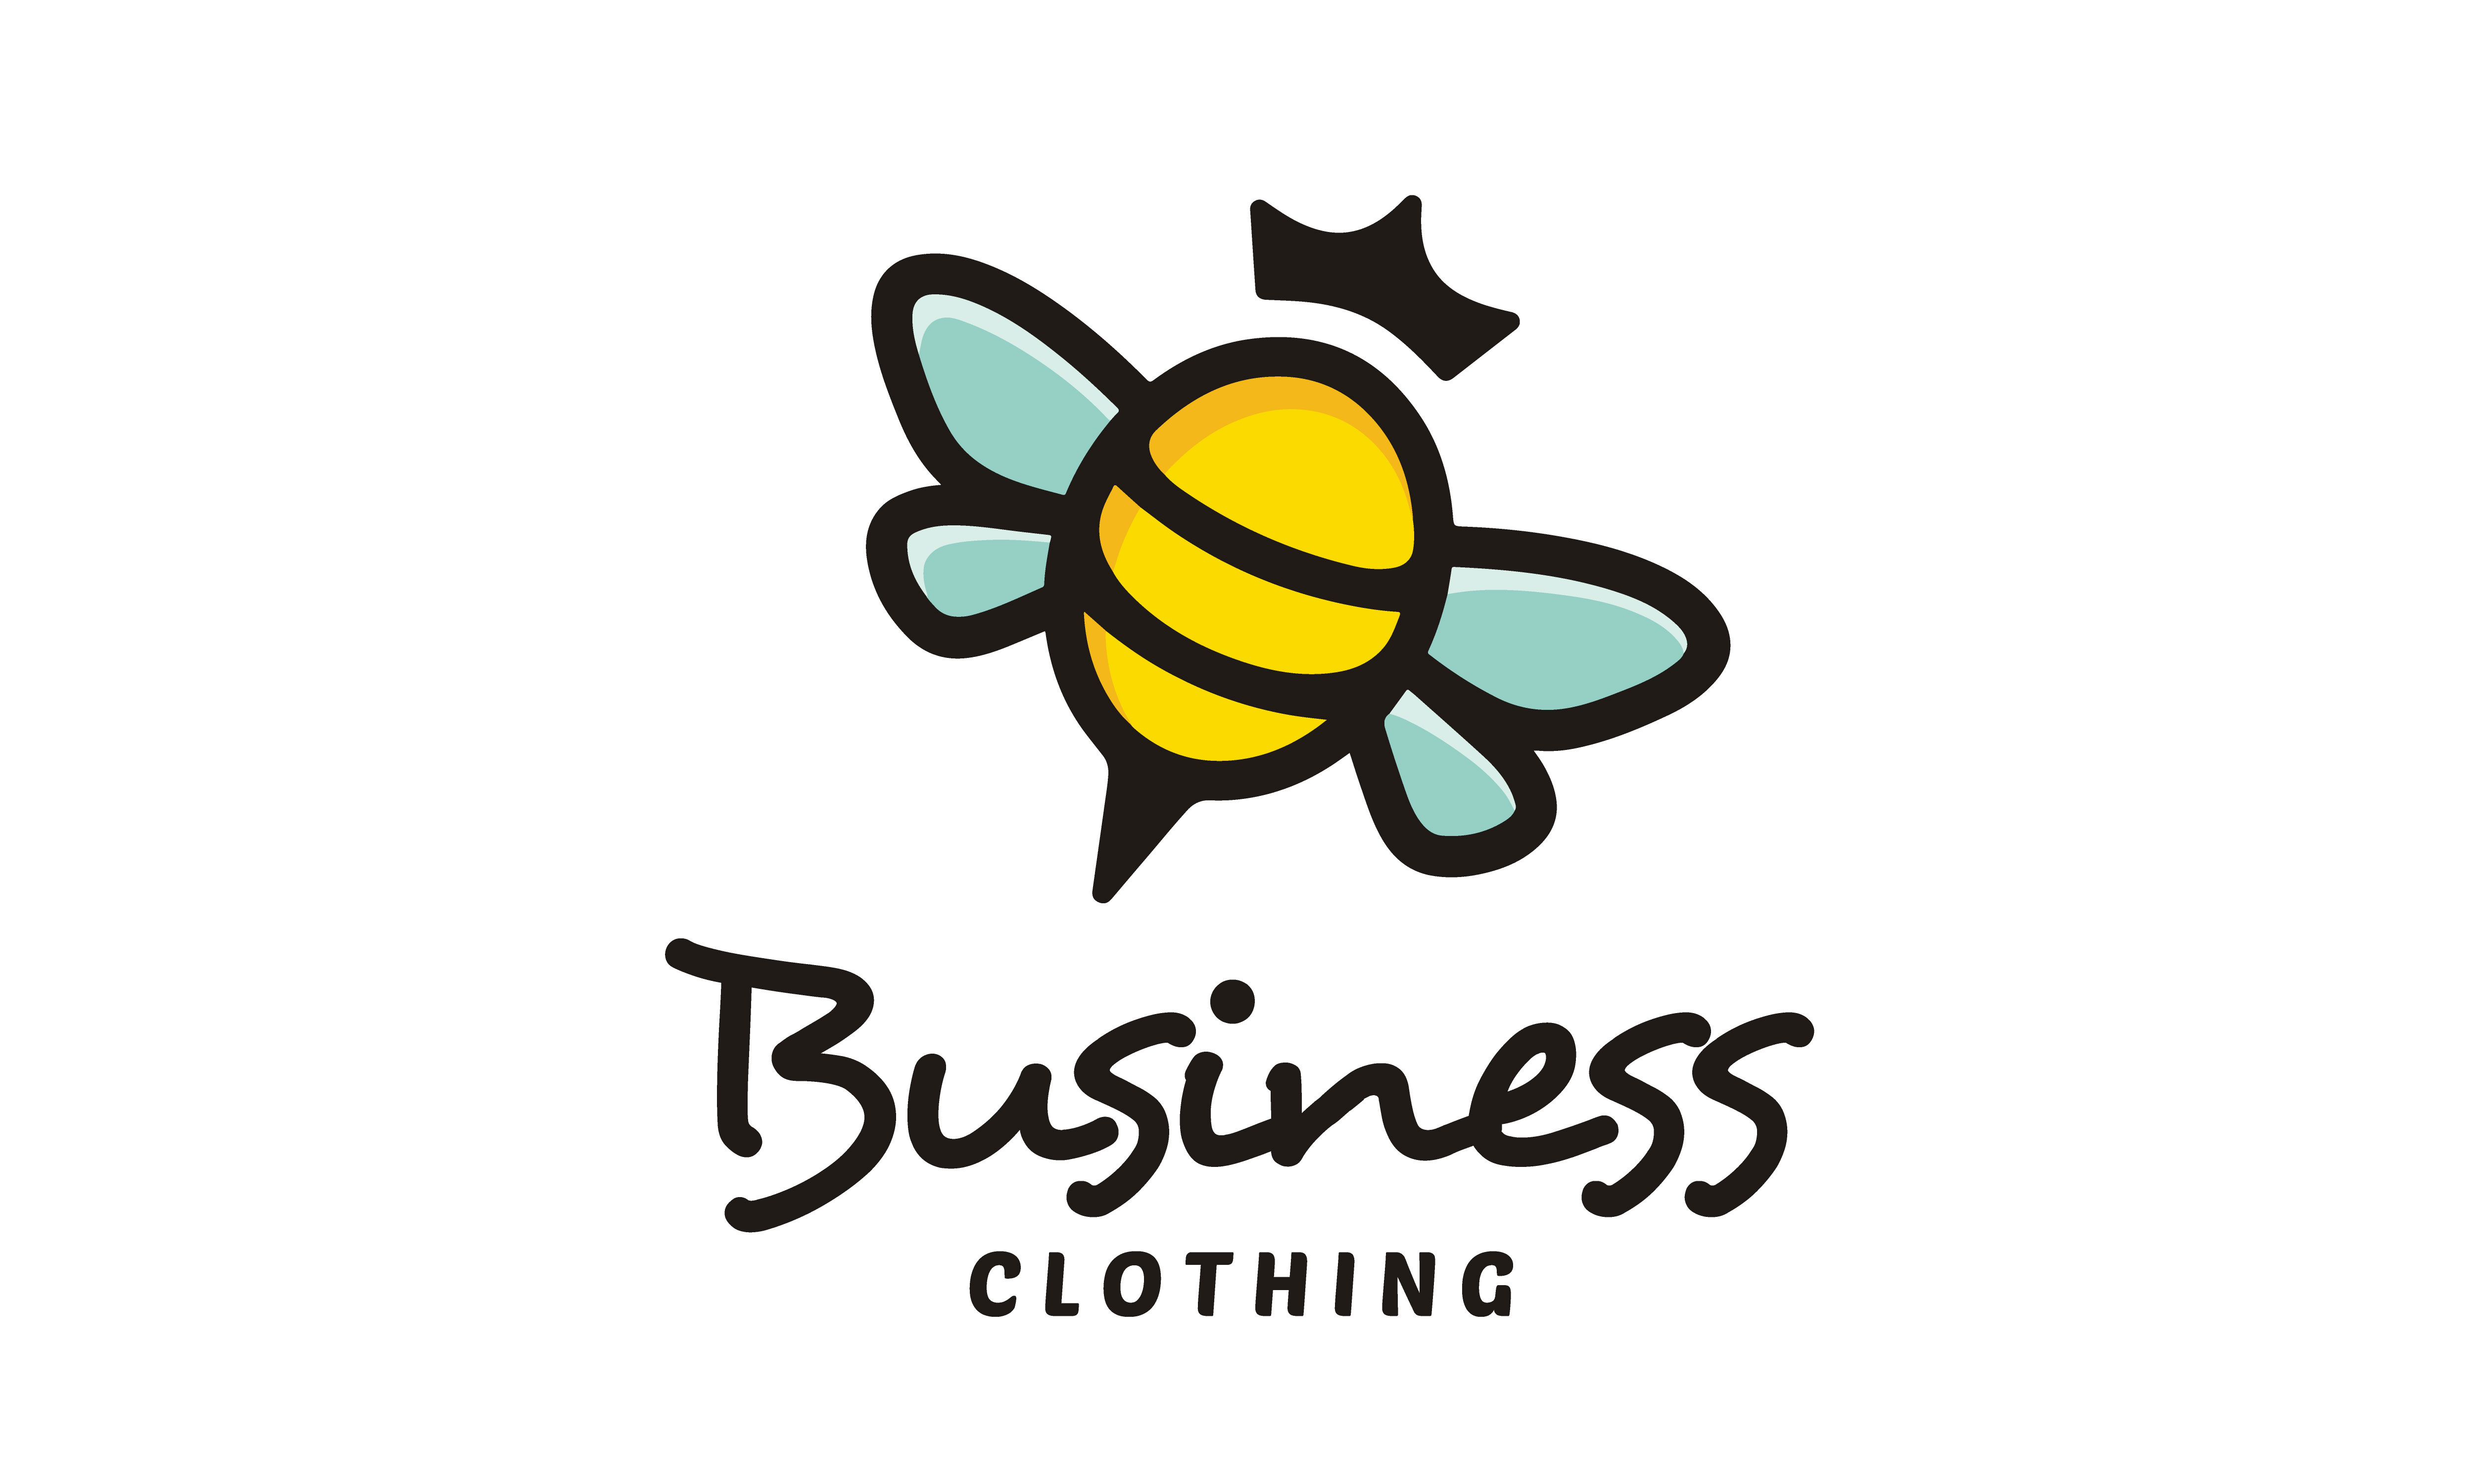 Download Free Colorful Cute Bee Queen With Crown Logo Graphic By Enola99d for Cricut Explore, Silhouette and other cutting machines.